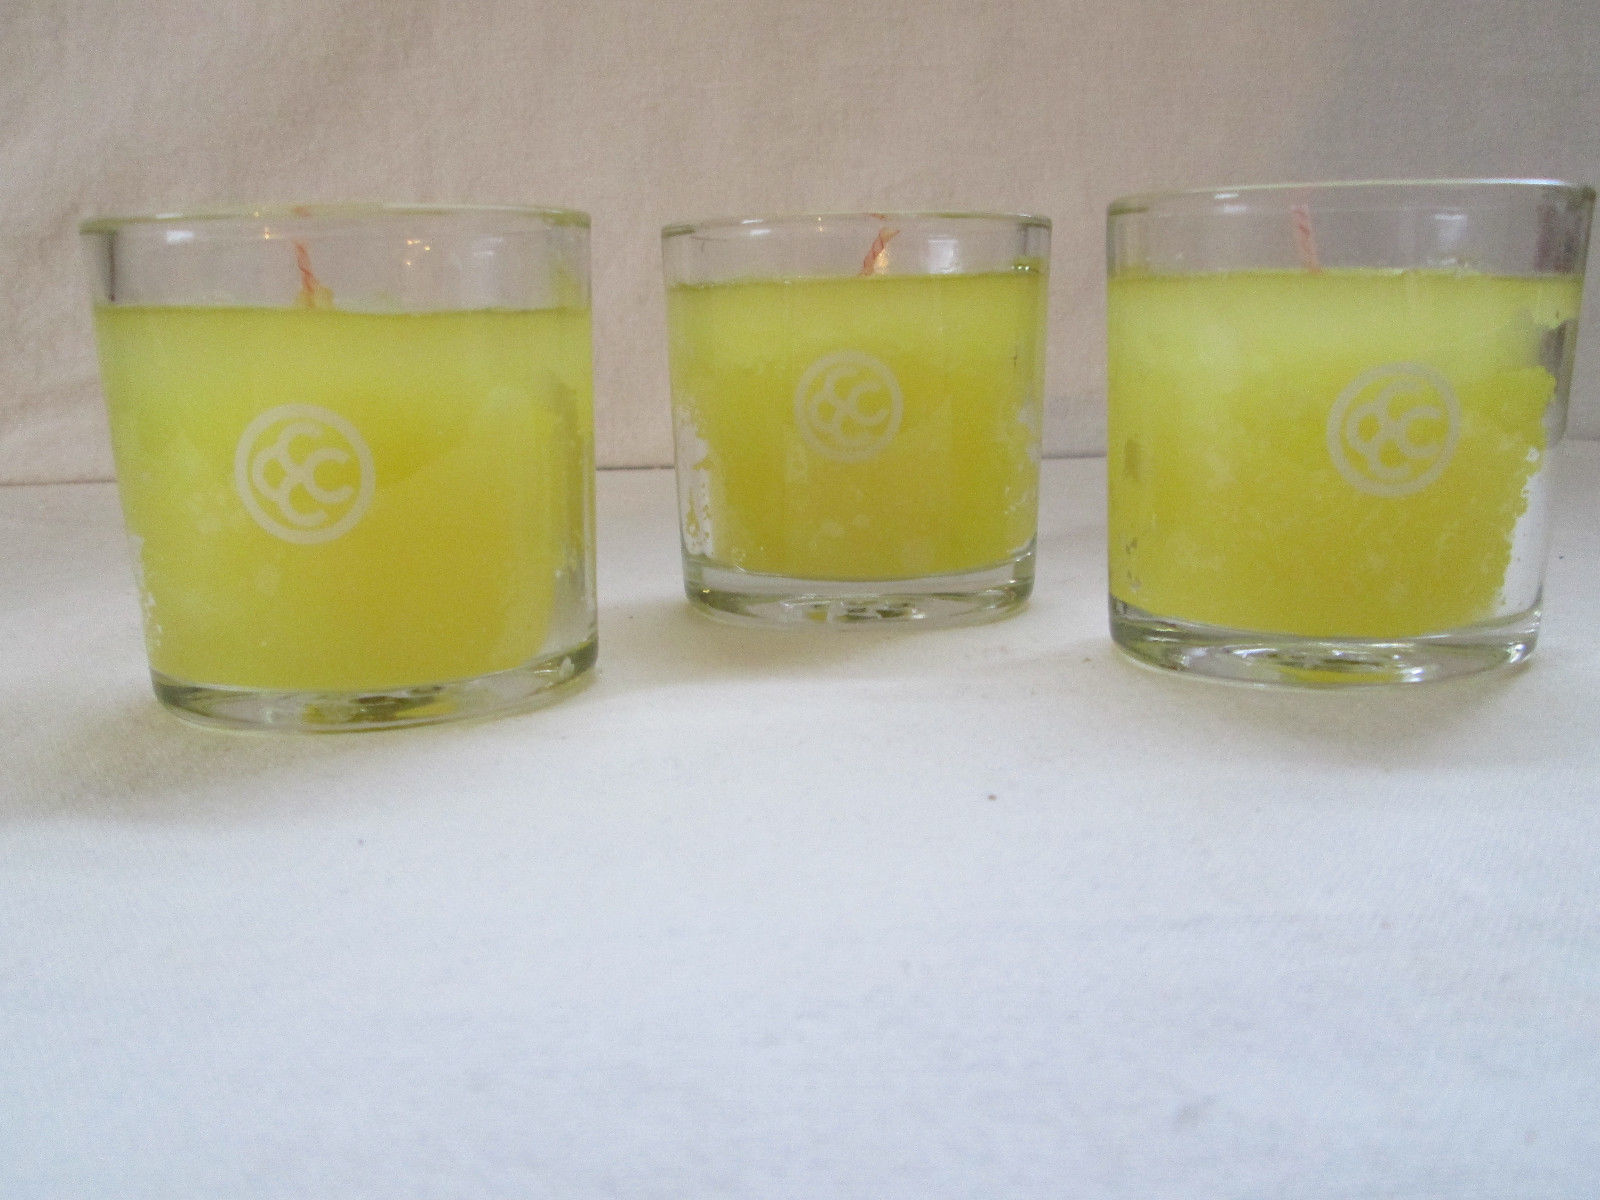 Primary image for 3 + 1 Colonial Candle Personal Votives ~~DAFFODILS & DAISES~~Glass filled